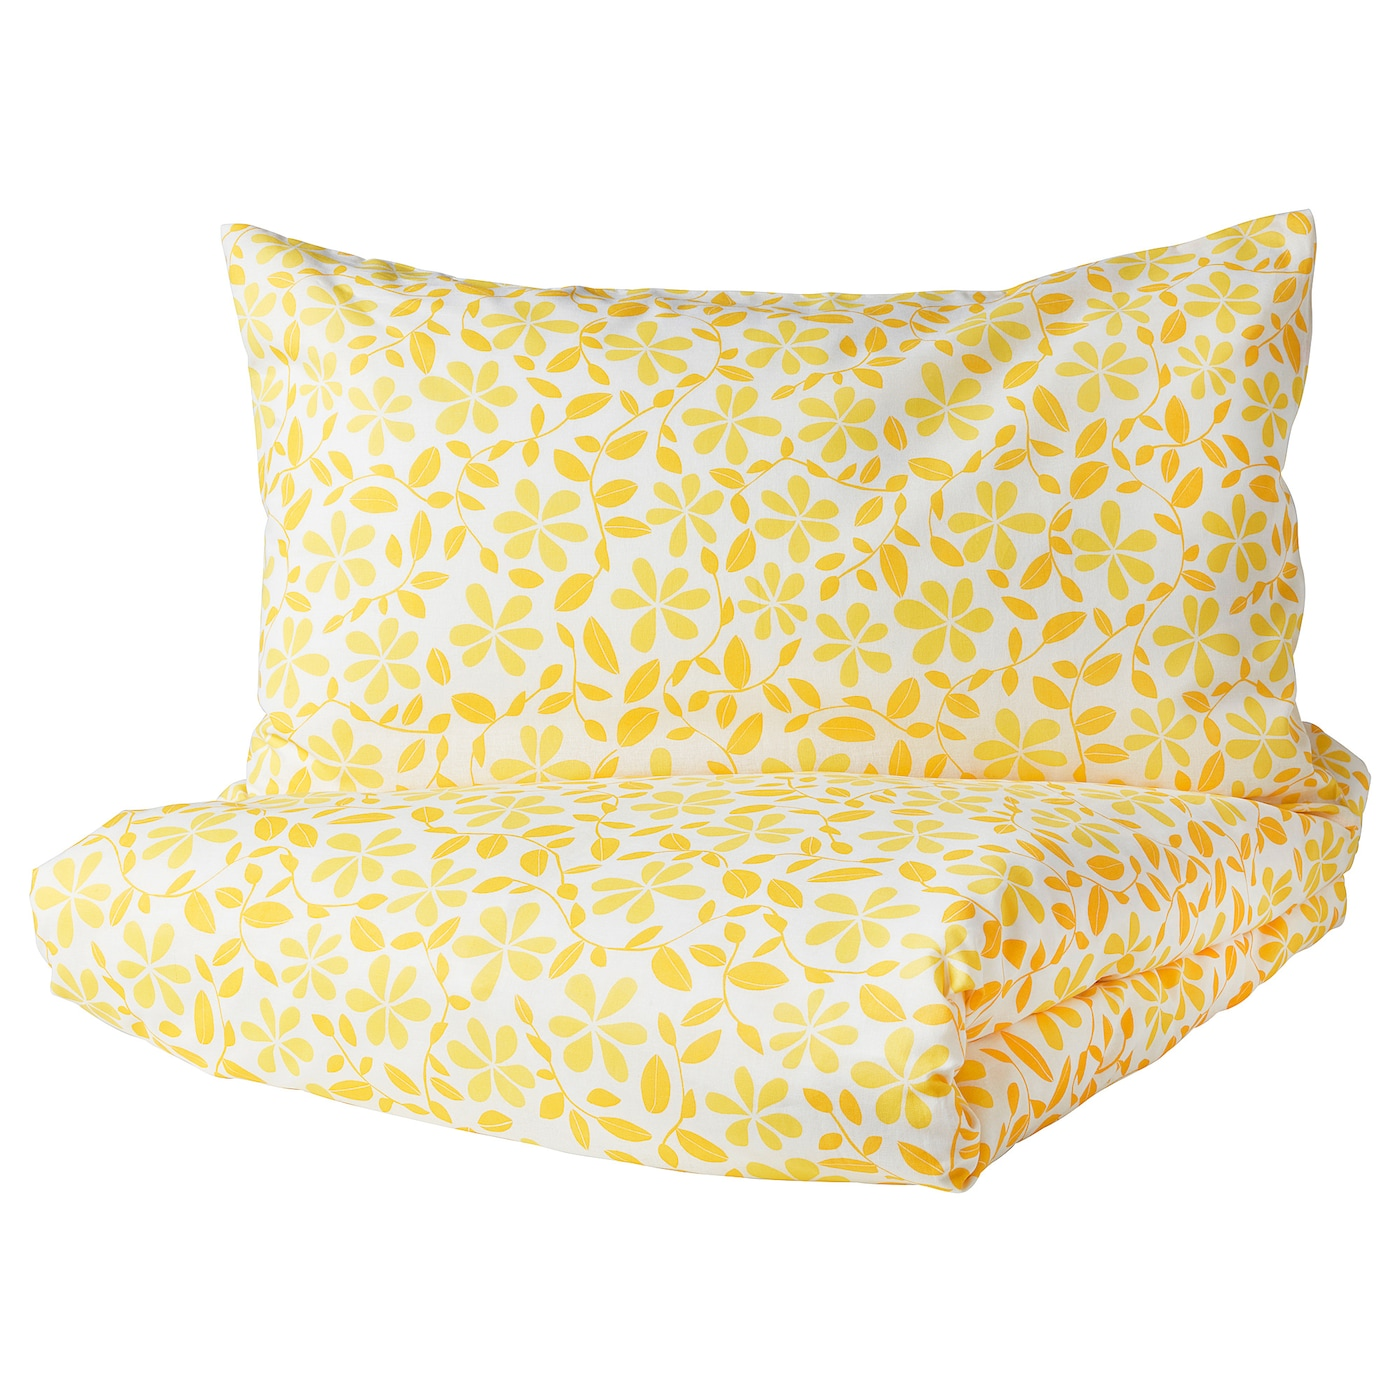 IKEA JUVELBLOMMA quilt cover and pillowcase